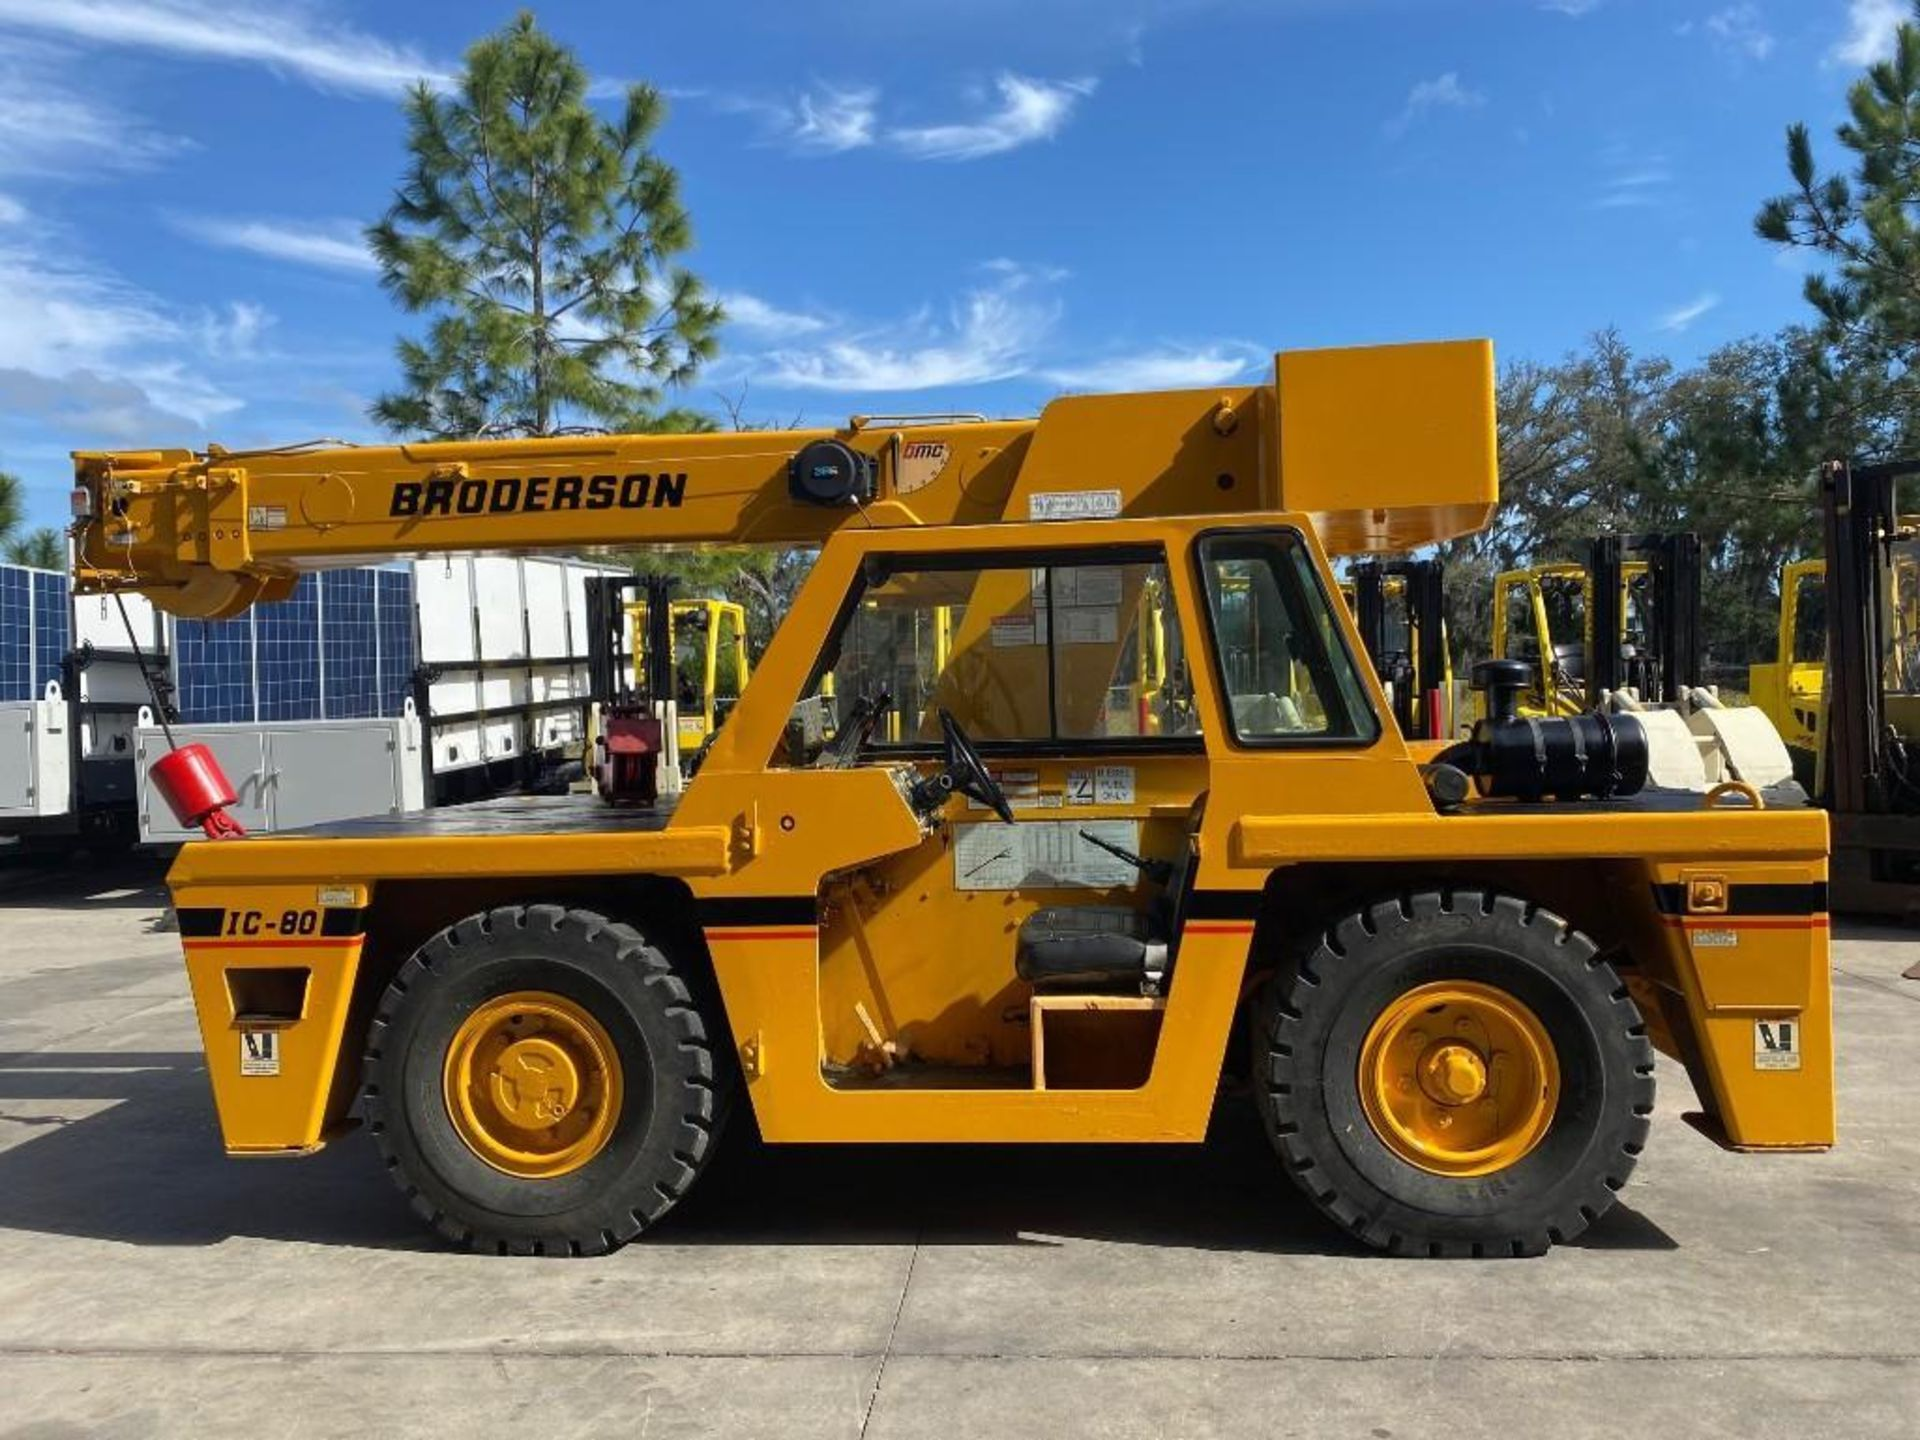 Lot 80 - BRODERSON IC80-2G 9 TON DECK CRANE, DIESEL, OUT RIGGERS, BIG SHIPPER II 386 LMI SYSTEM